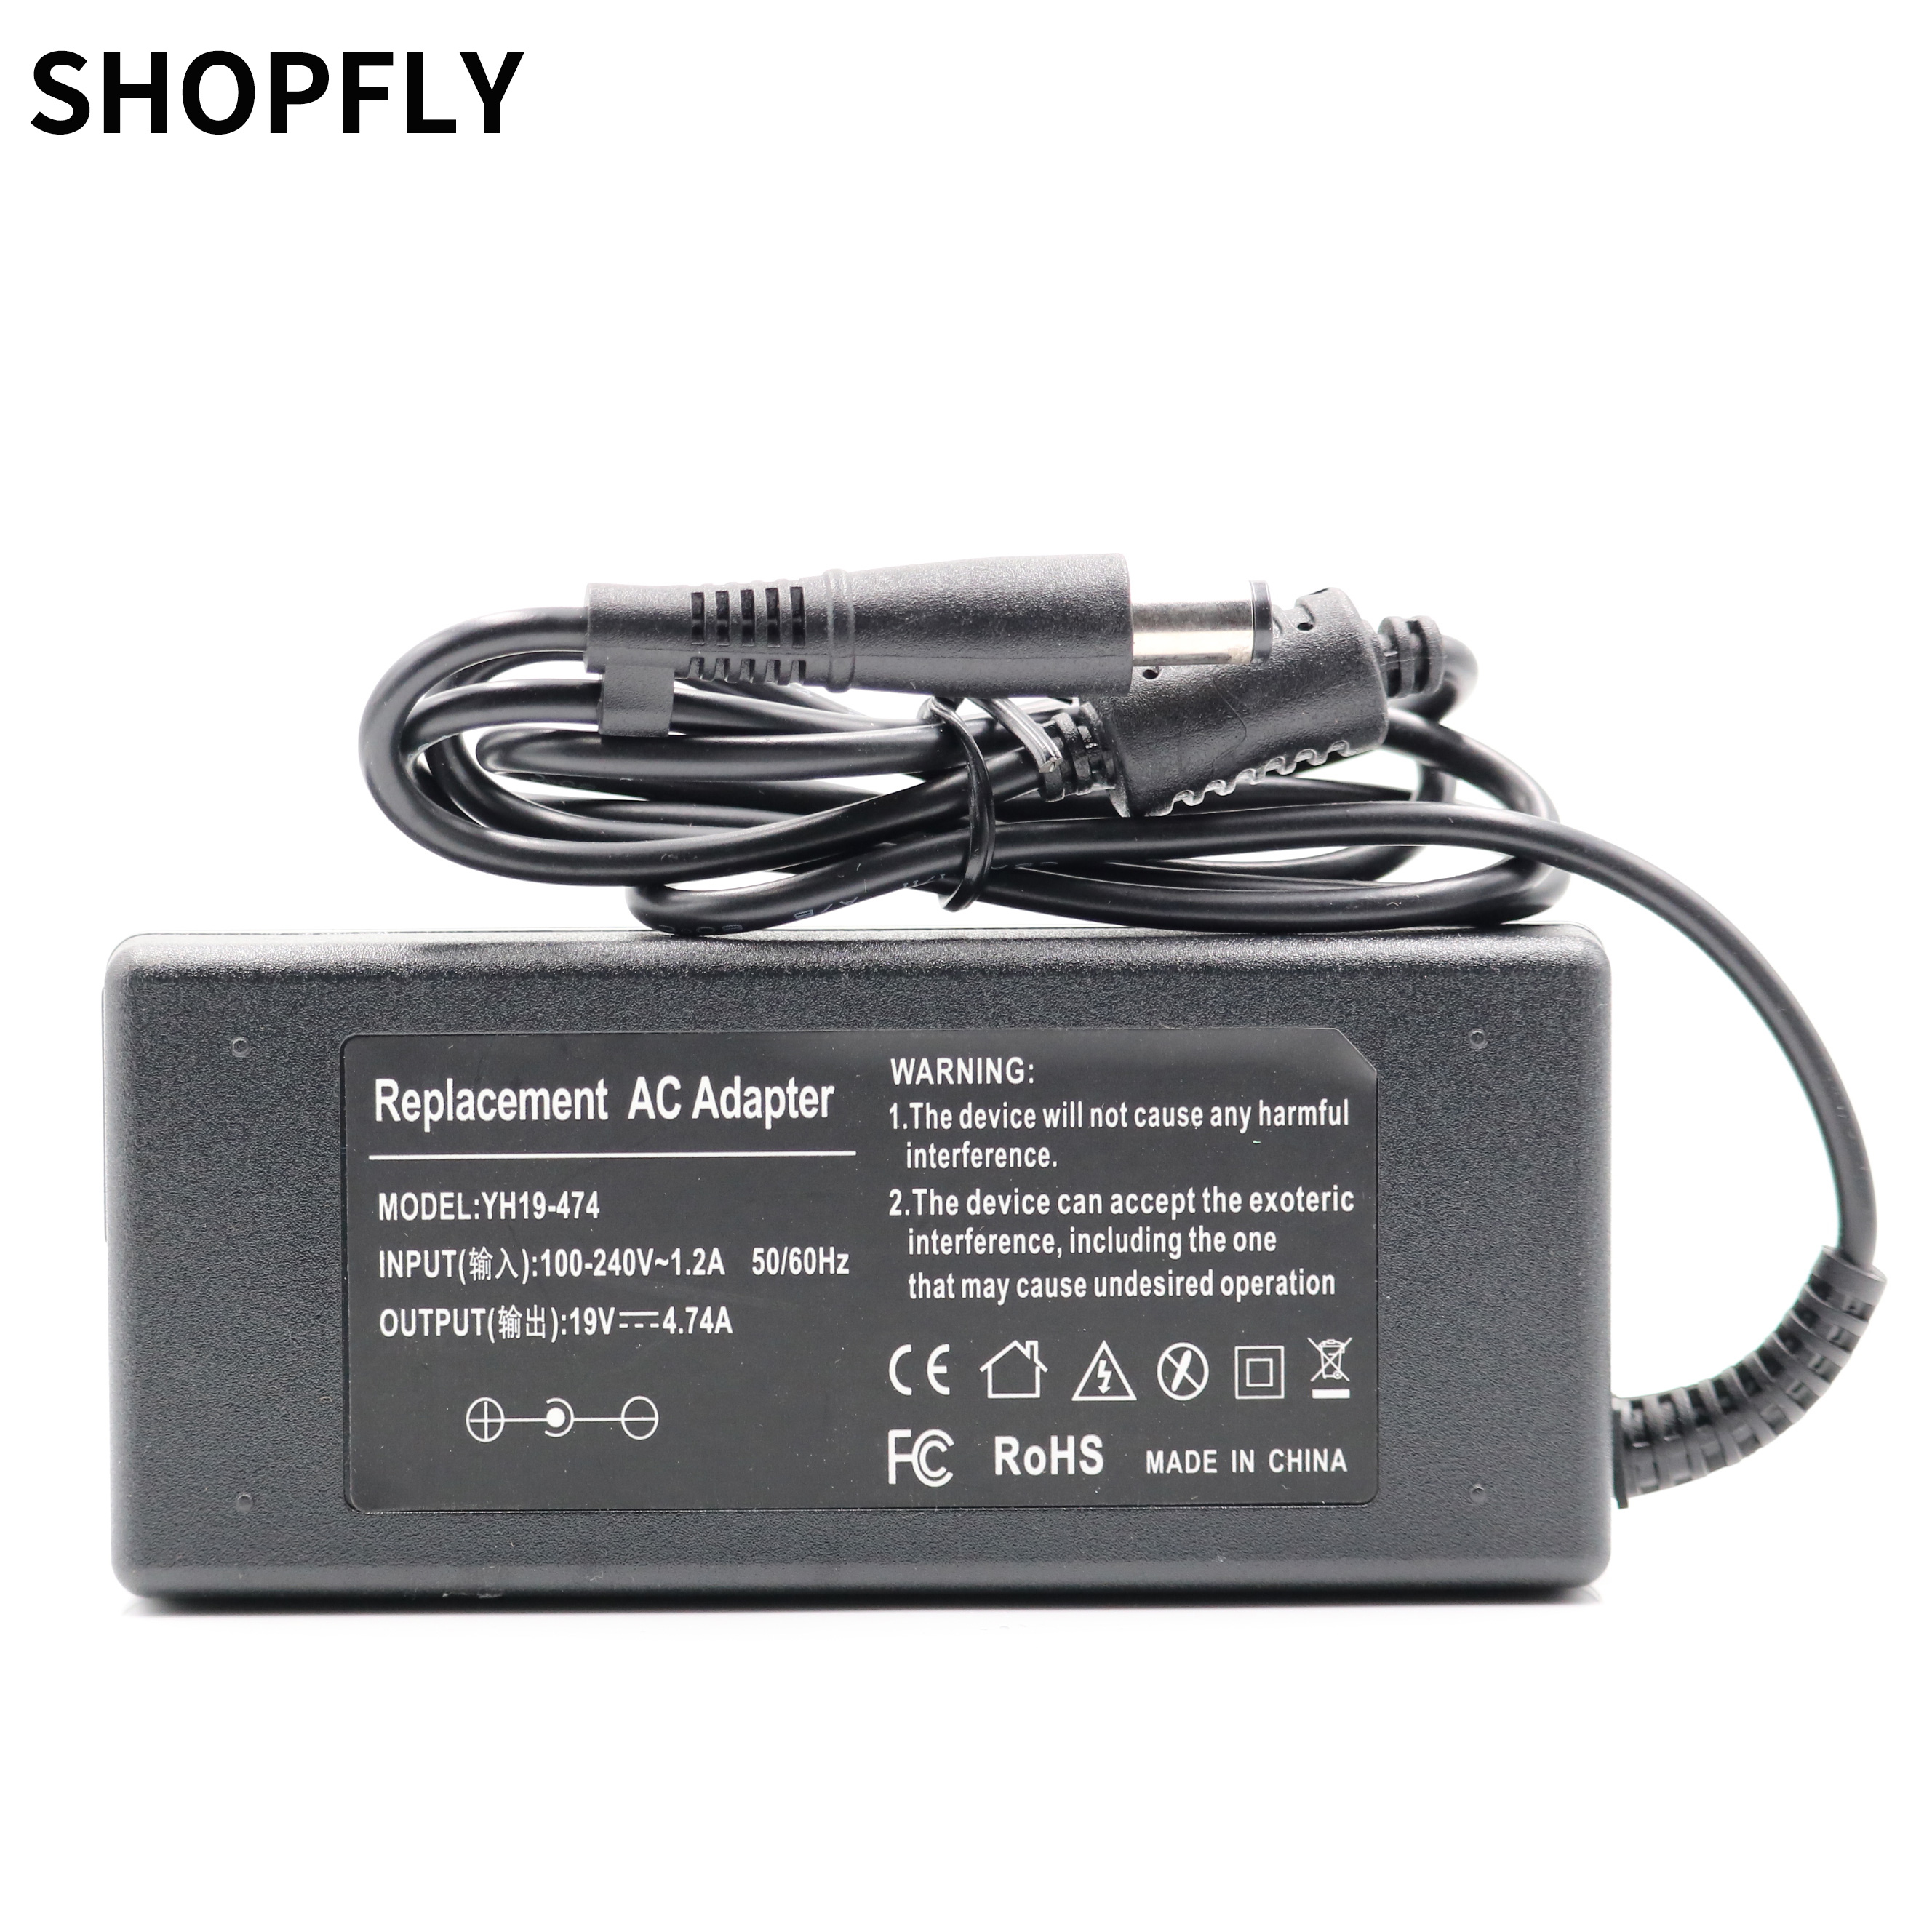 19V 4.74A 90w Laptop AC DC Power Supply Adapter Charger For HP Probook 4440s 4535s 4530S 4540S 4545s 6470b 6475b 6570b